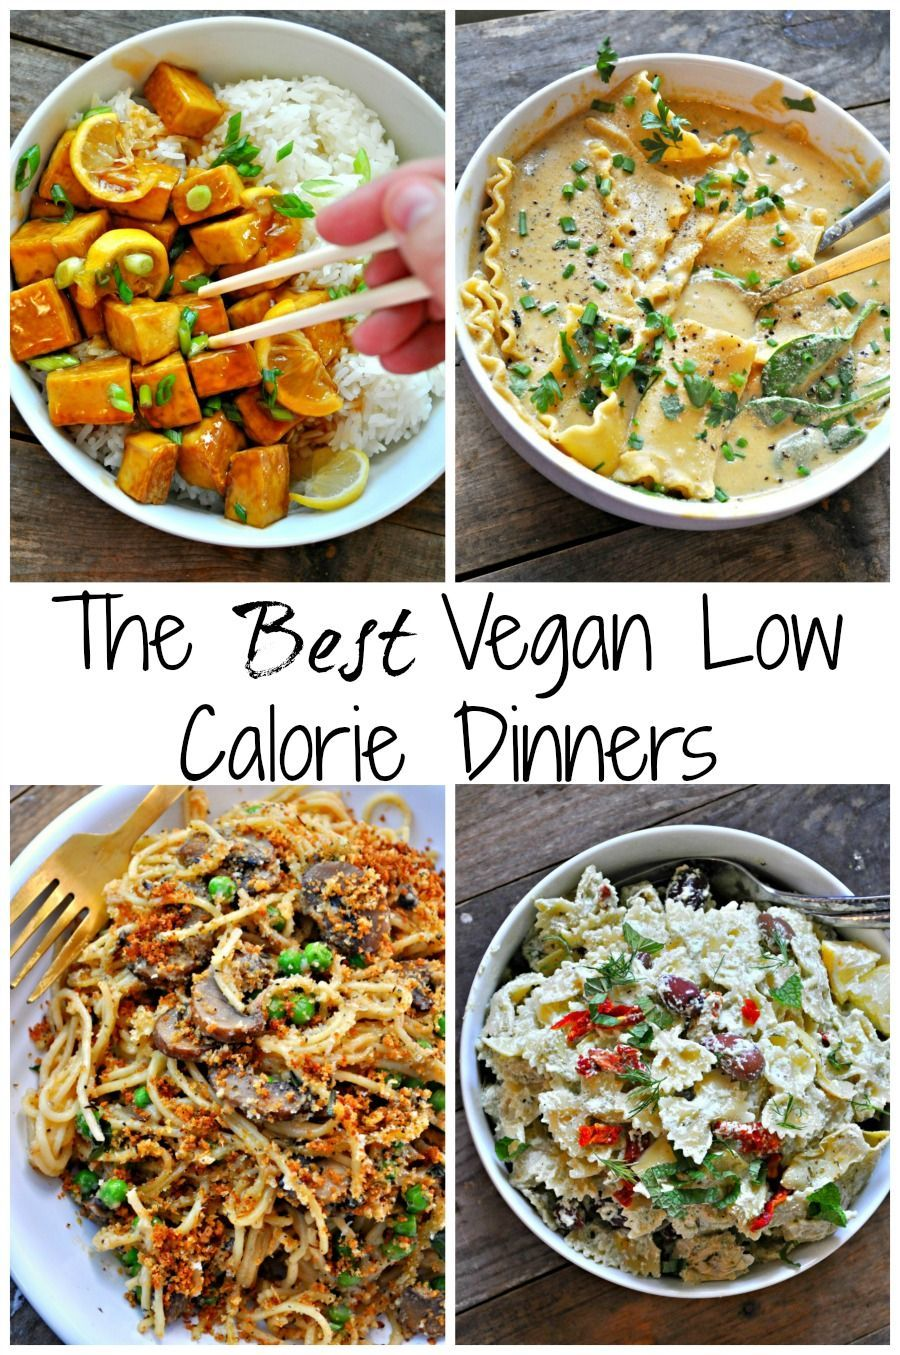 The Best Vegan Low Calorie Recipes Rabbit And Wolves The Best Vegan Low Calorie Recipes In 2020 Vegan Recipes Healthy Low Calories Vegetarian Low Calorie Dinners